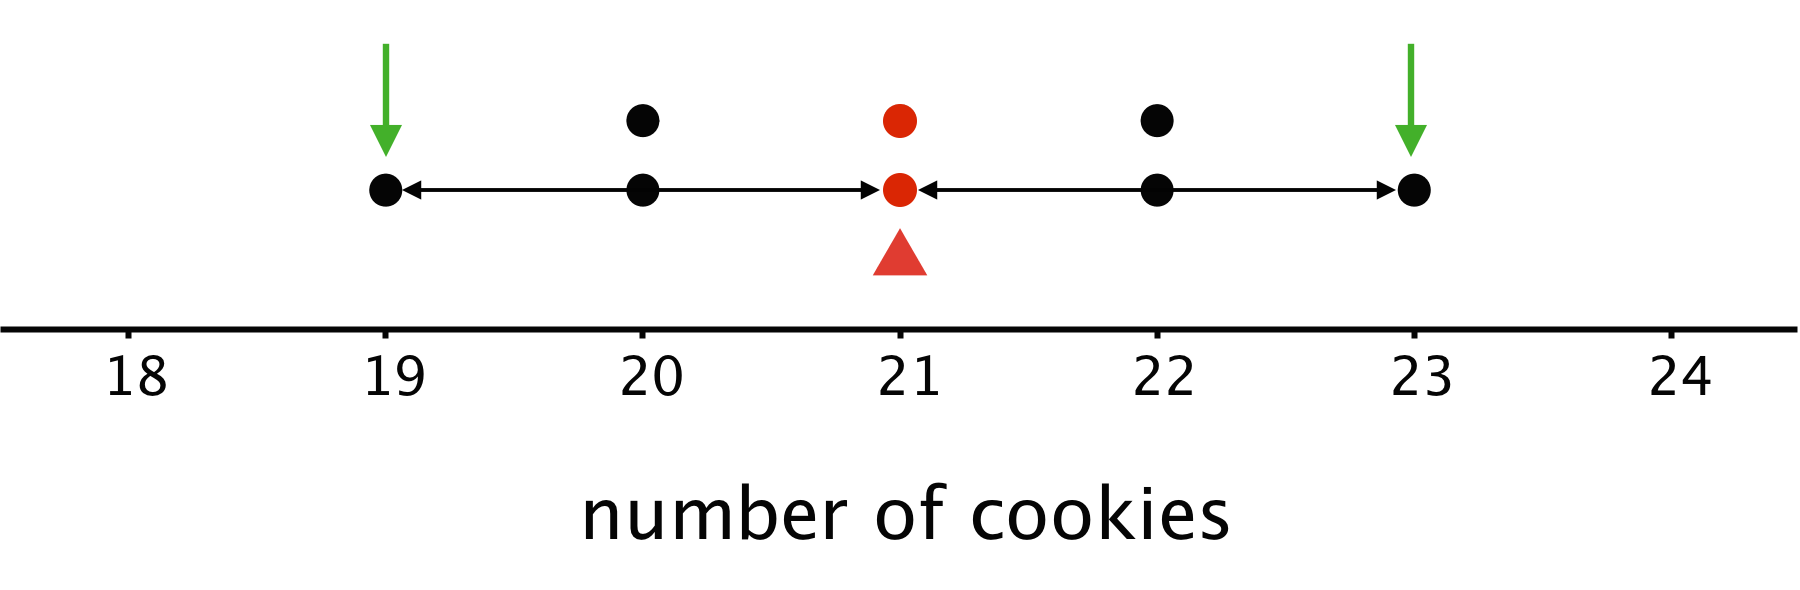 "A dot plot for ""number of cookies"". The numbers 18 through 24 are indicated. There is a triangle indicated at 21 cookies. There are arrows pointing to the dots at 19 and 23. There are lines indicating the distance between 19 and 21 and the distance between 21 and 23. The data are as follows: 18 cookies, 0 dots. 19 cookies, 1 dot. 20 cookies, 2 dots. 21 cookies, 2 dots. 22 cookies, 2 dots. 23 cookies, 1 dot. 24 cookies, 0 dots."